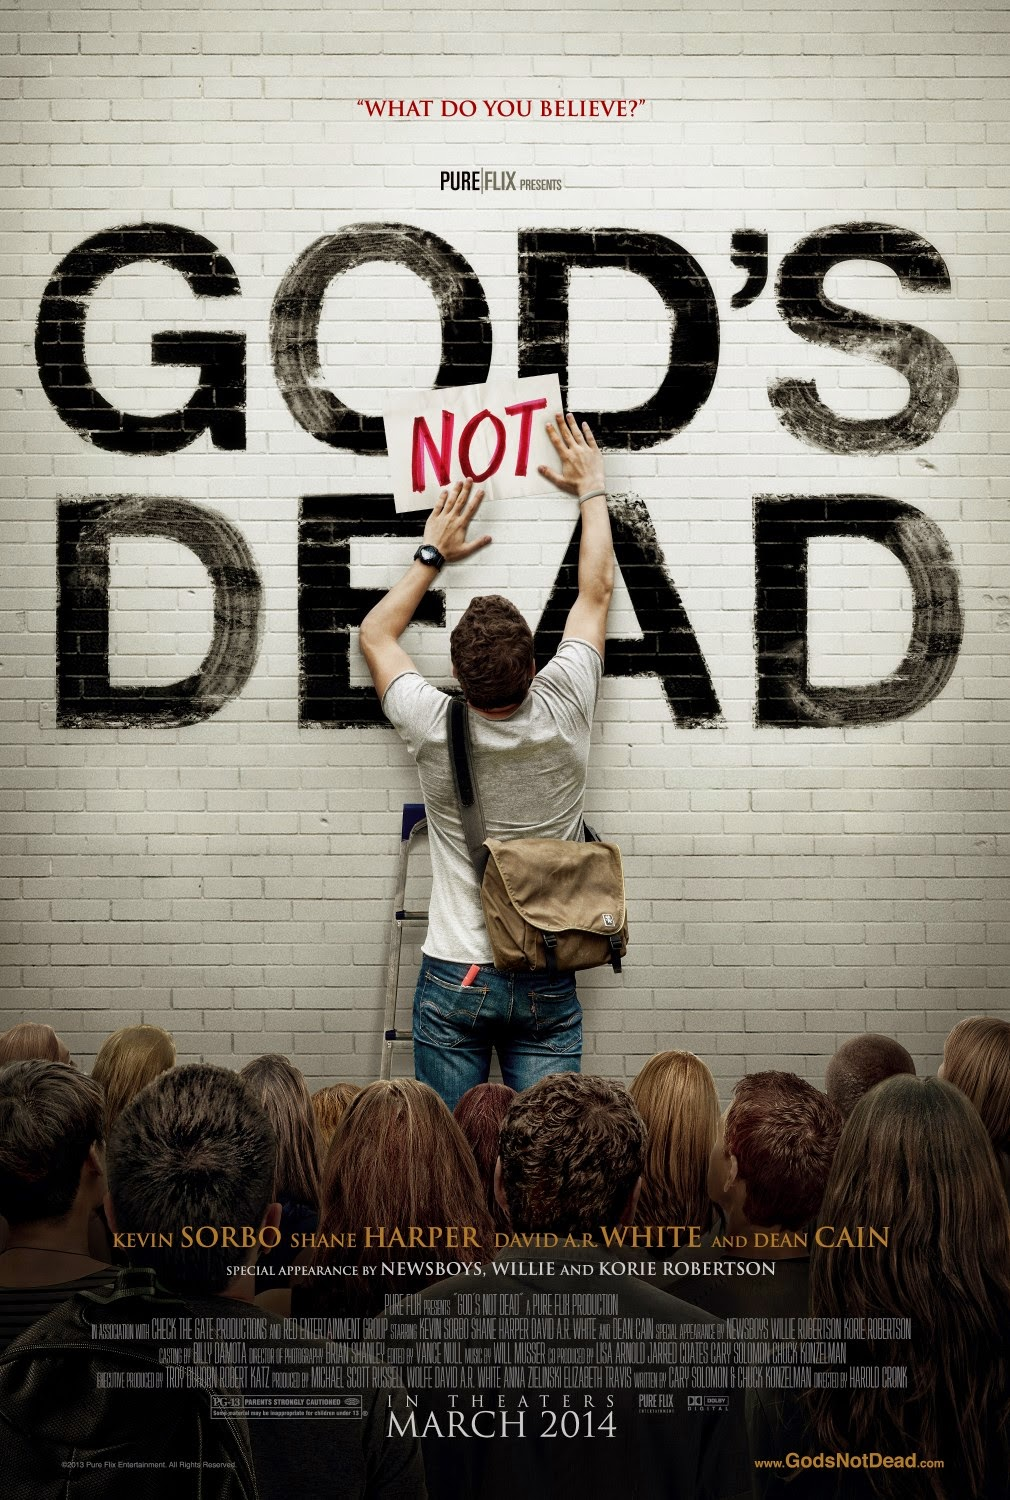 God's Not Dead — 1 out of 5 stars